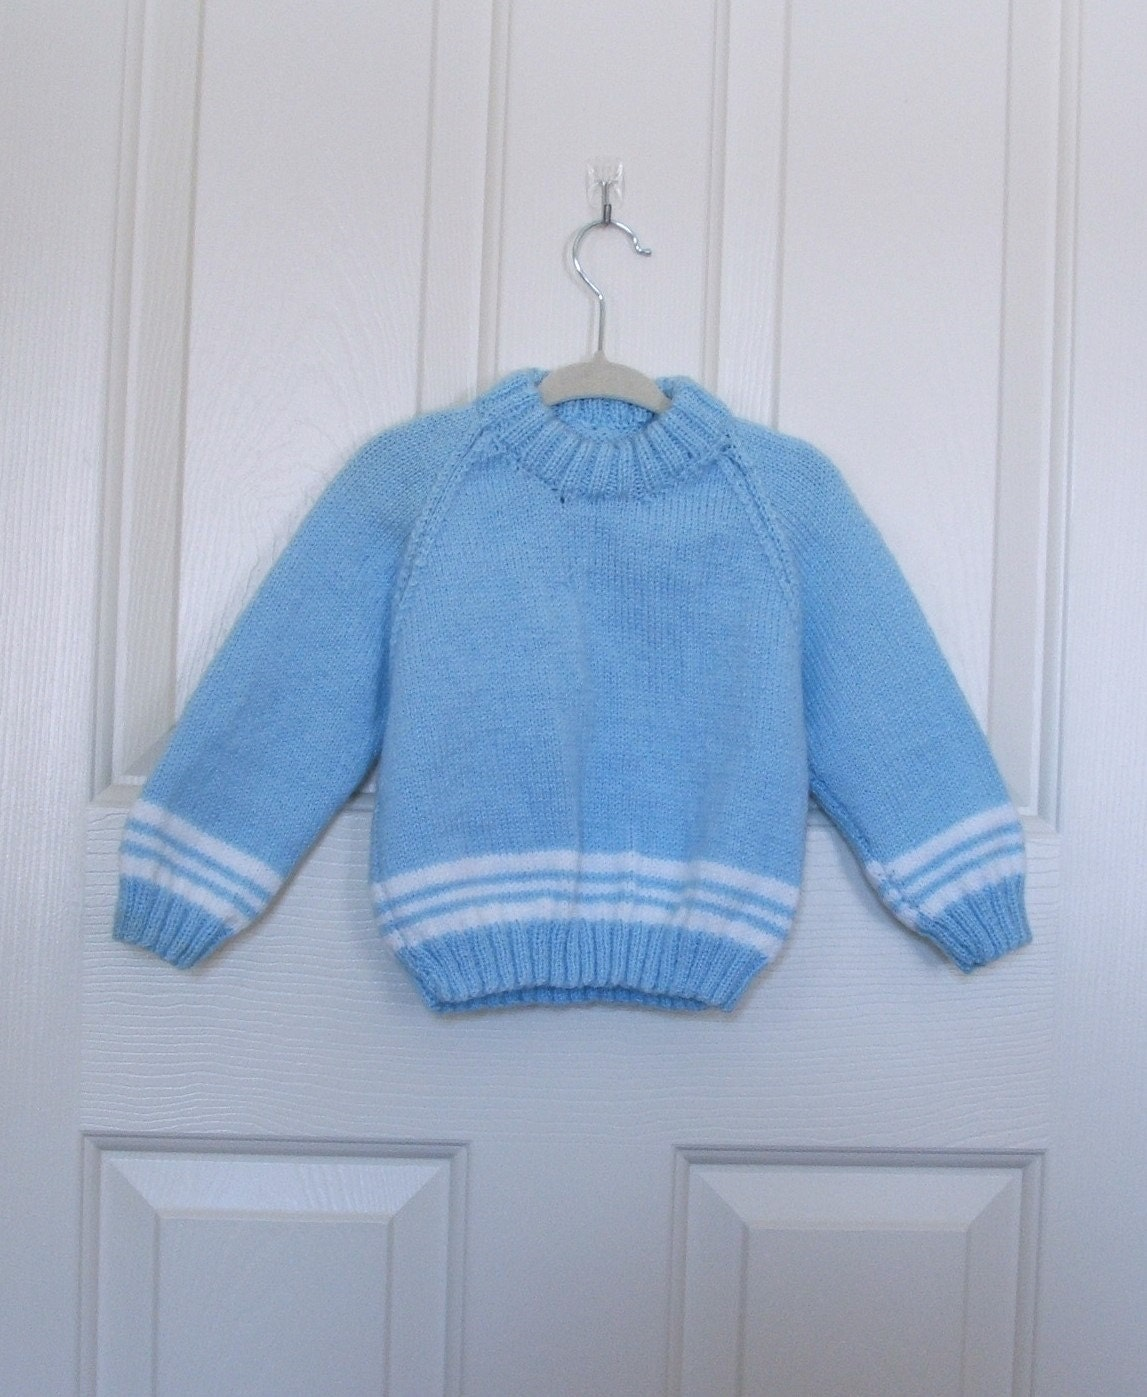 Buy Rochas Women's Blue White Stripe Sweater. Similar products also available. SALE now on!Price: $